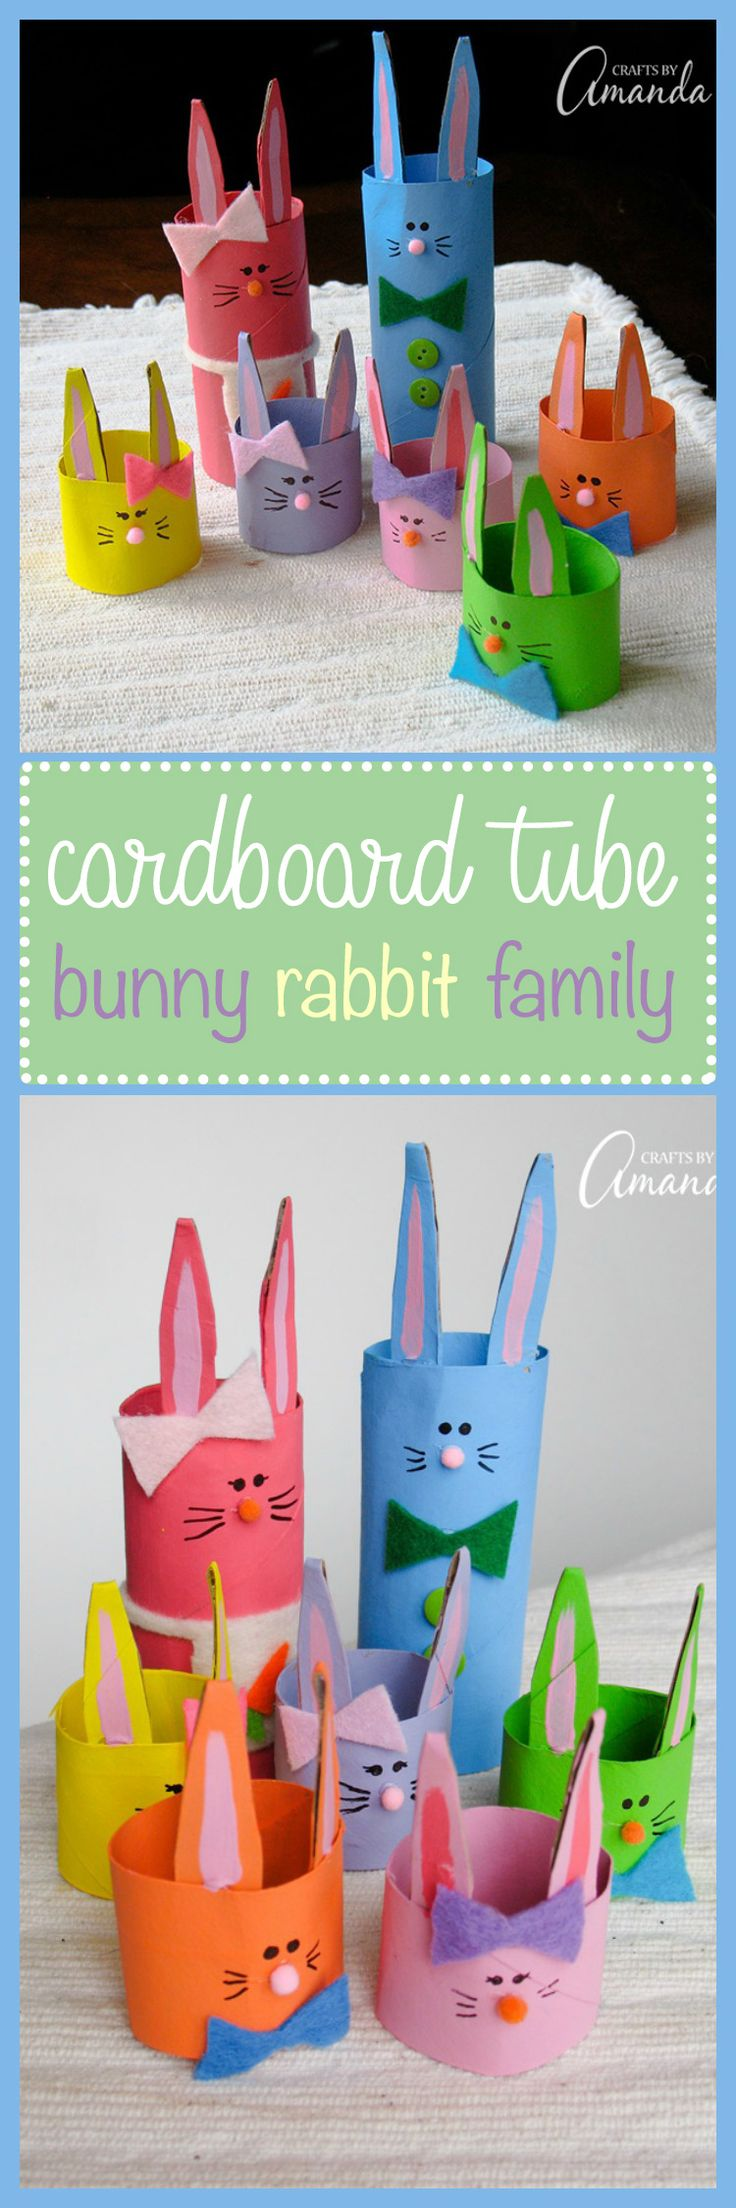 Easter crafts for seniors - Cardboard Tube Bunny Rabbit Family Easter Crafts